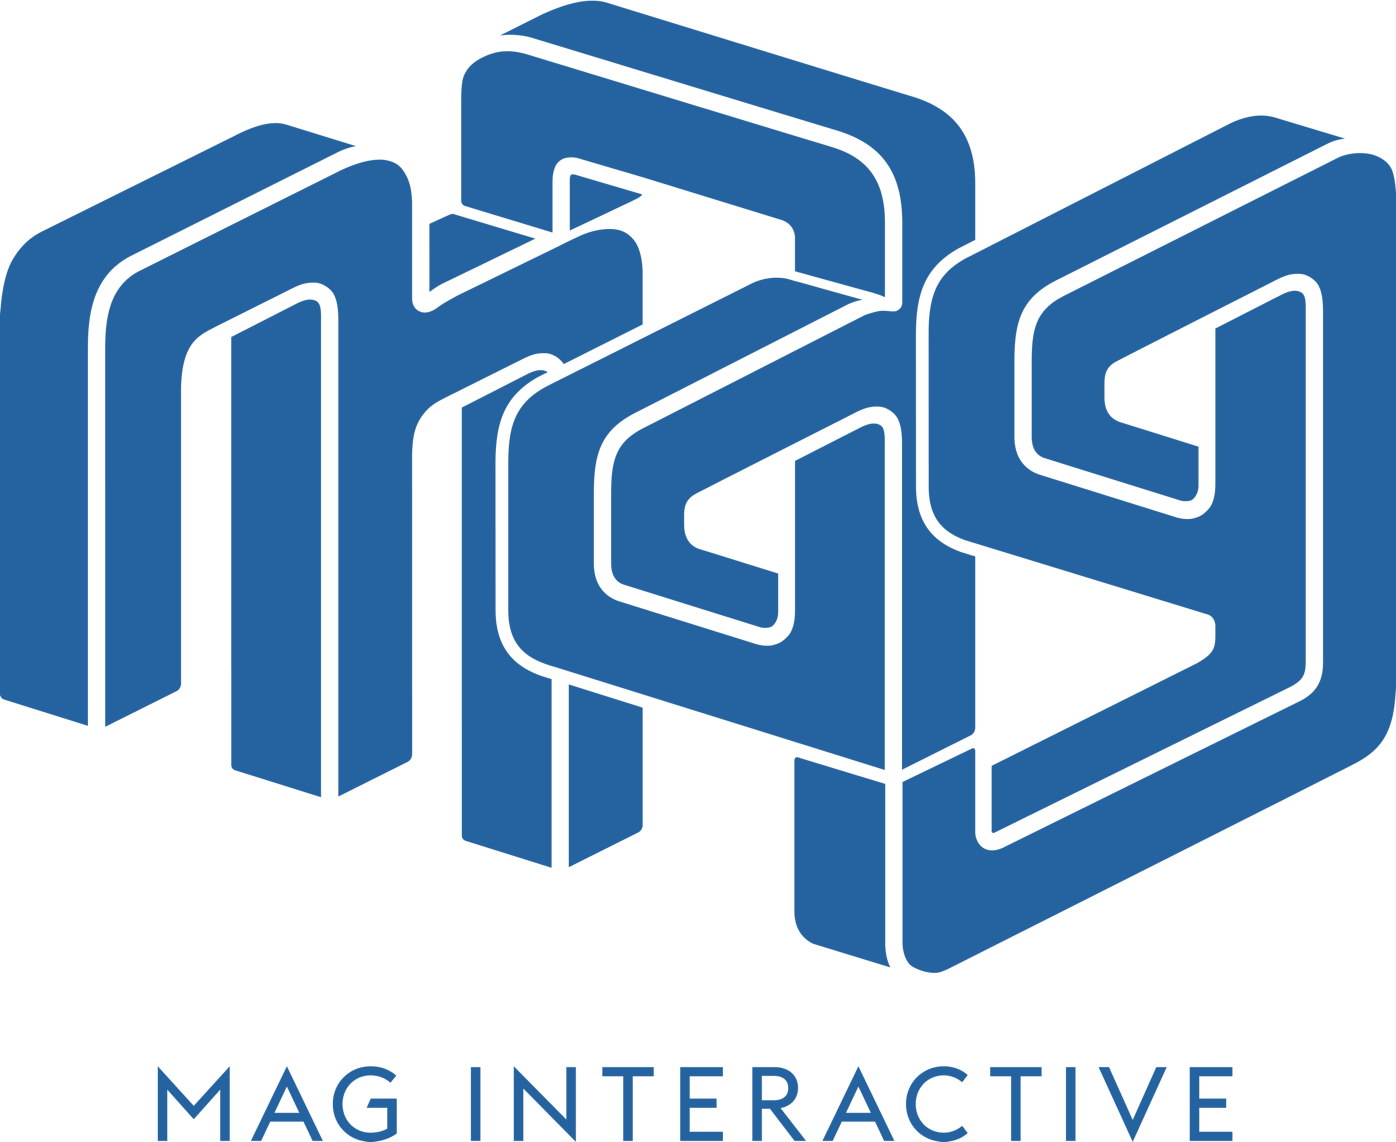 <p>MAG Interactive is a mobile games development company with over 80 employees, and offices in Stockholm and Brighton. The company is primarily made up of programmers and designers, but there are also employees who specialise in finance and marketing. In a manager-free organisation, employee appraisal and feedback tools play a key role. Meet Ida Wate, HR Manager at MAG Interactive.</p>